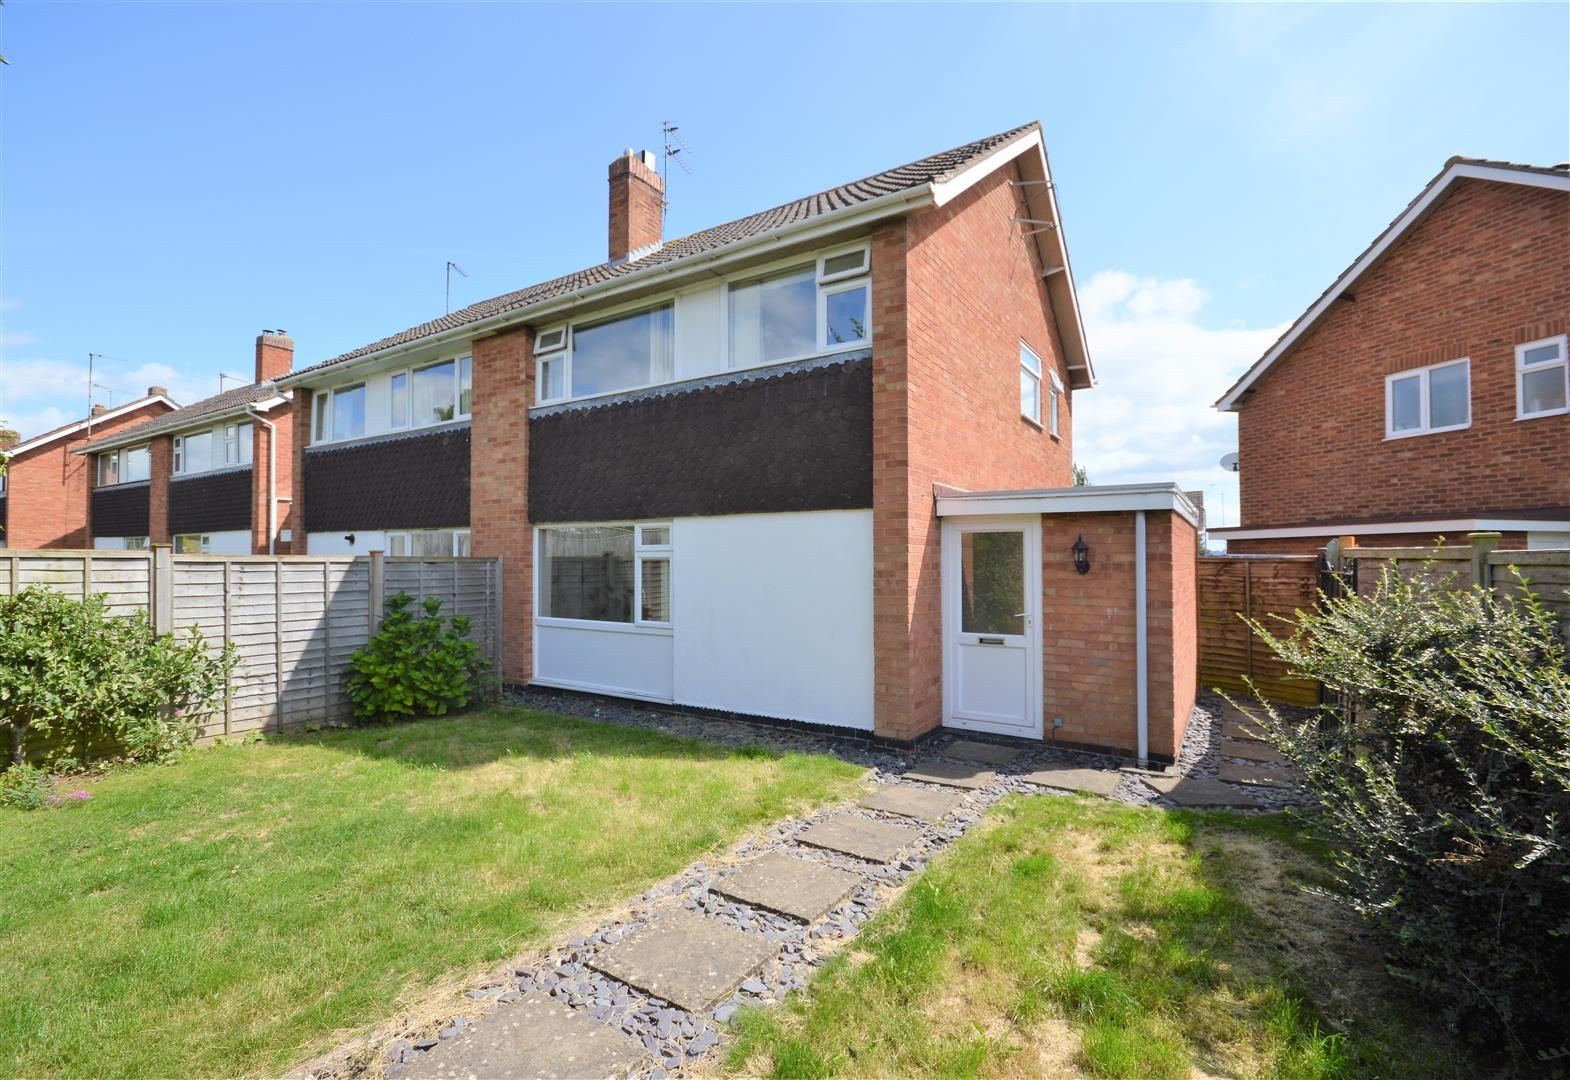 3 bed semi-detached to rent, HR4